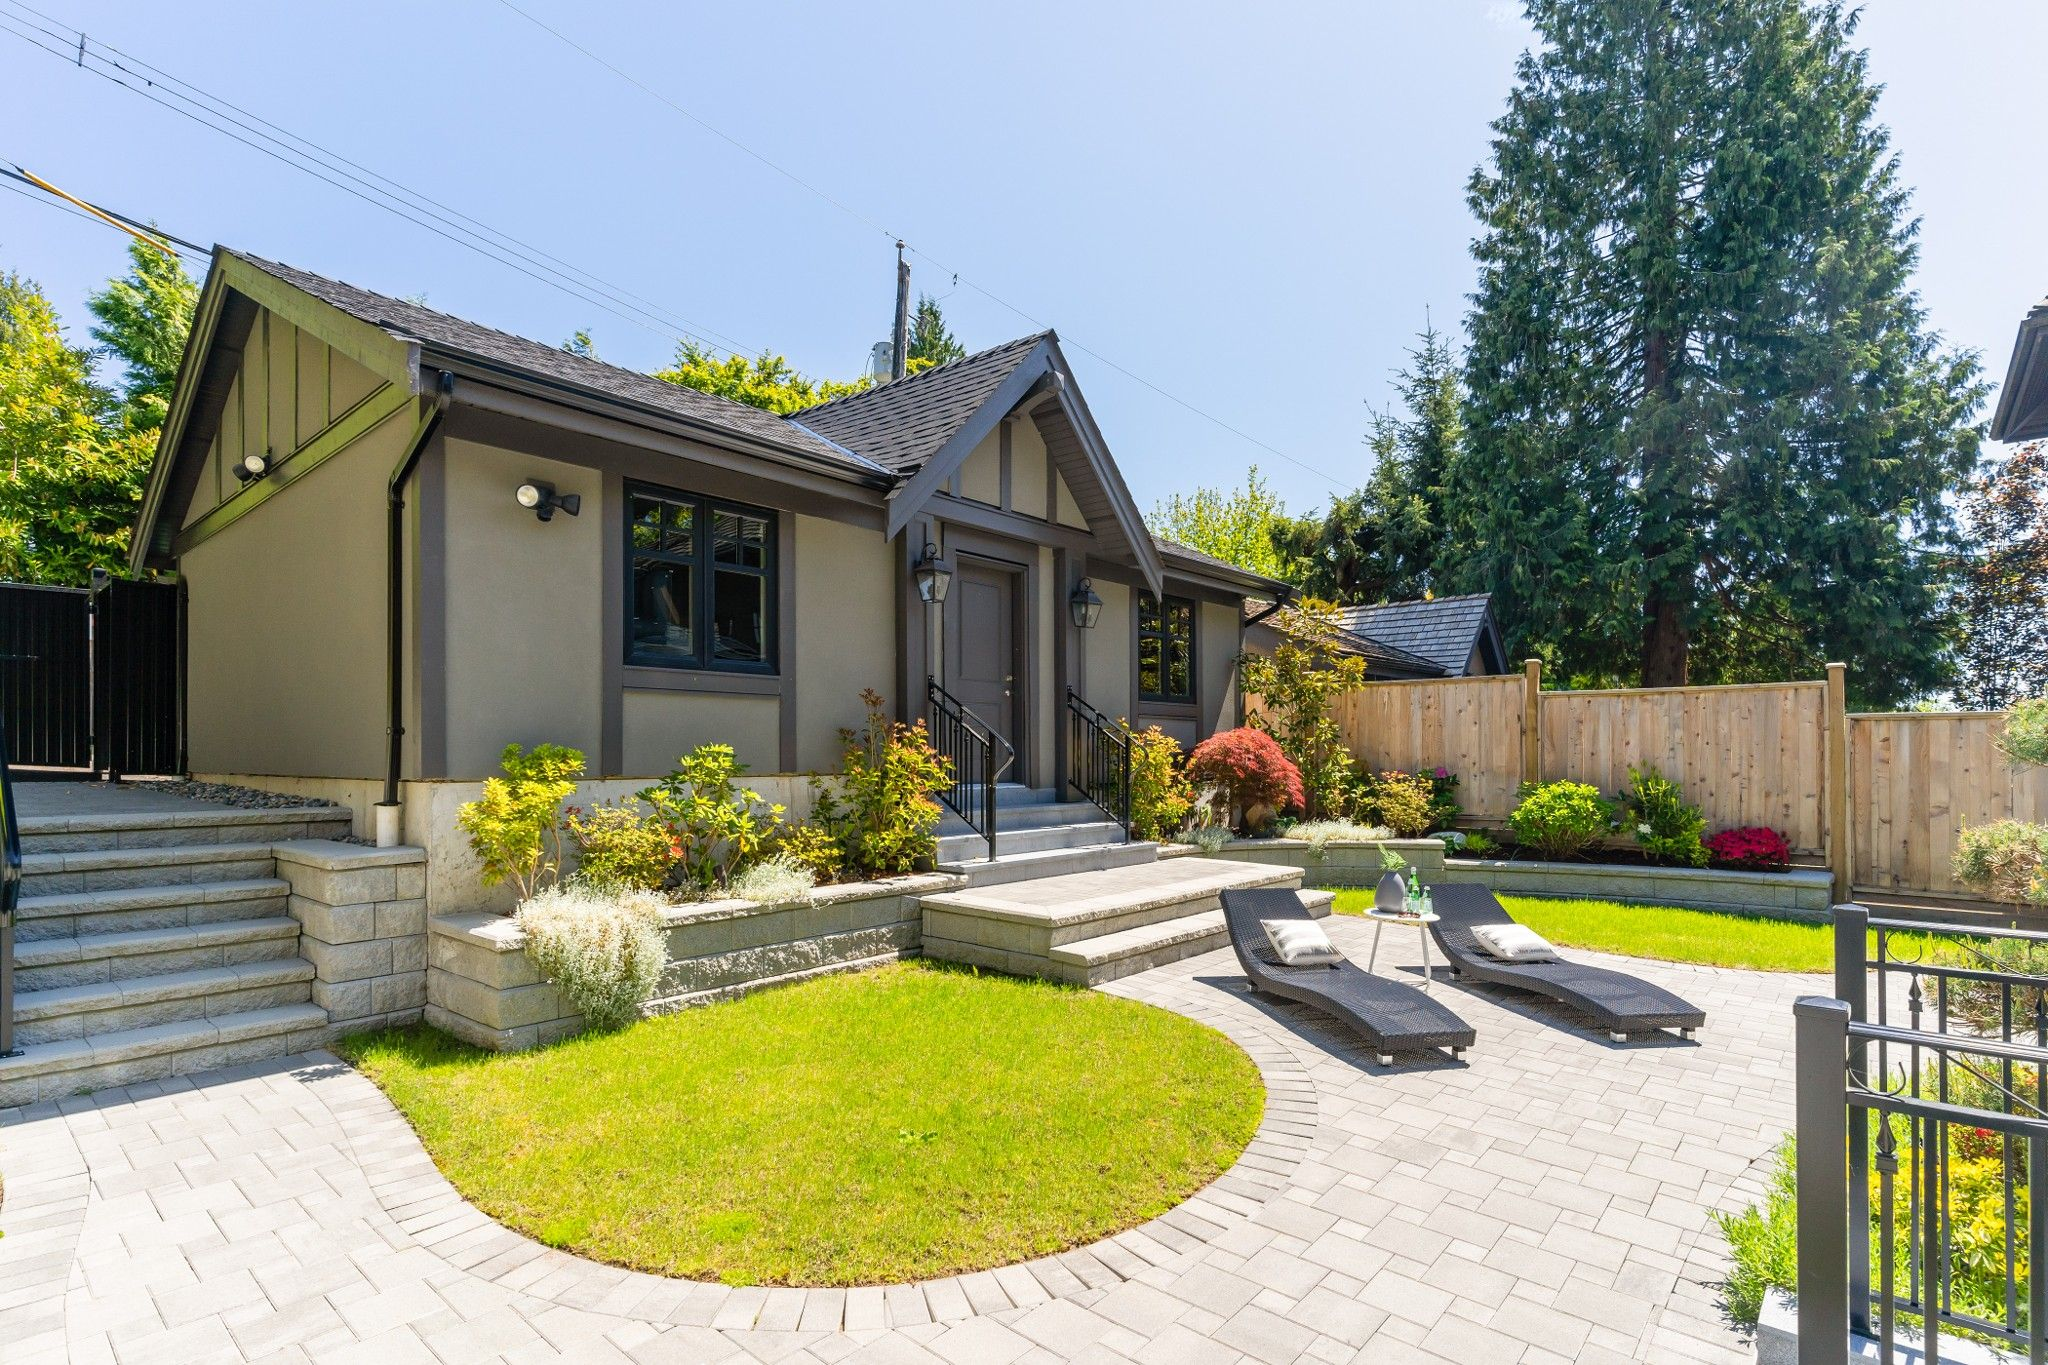 Photo 44: Photos: 5756 ALMA STREET in VANCOUVER: Southlands House for sale (Vancouver West)  : MLS®# R2588229